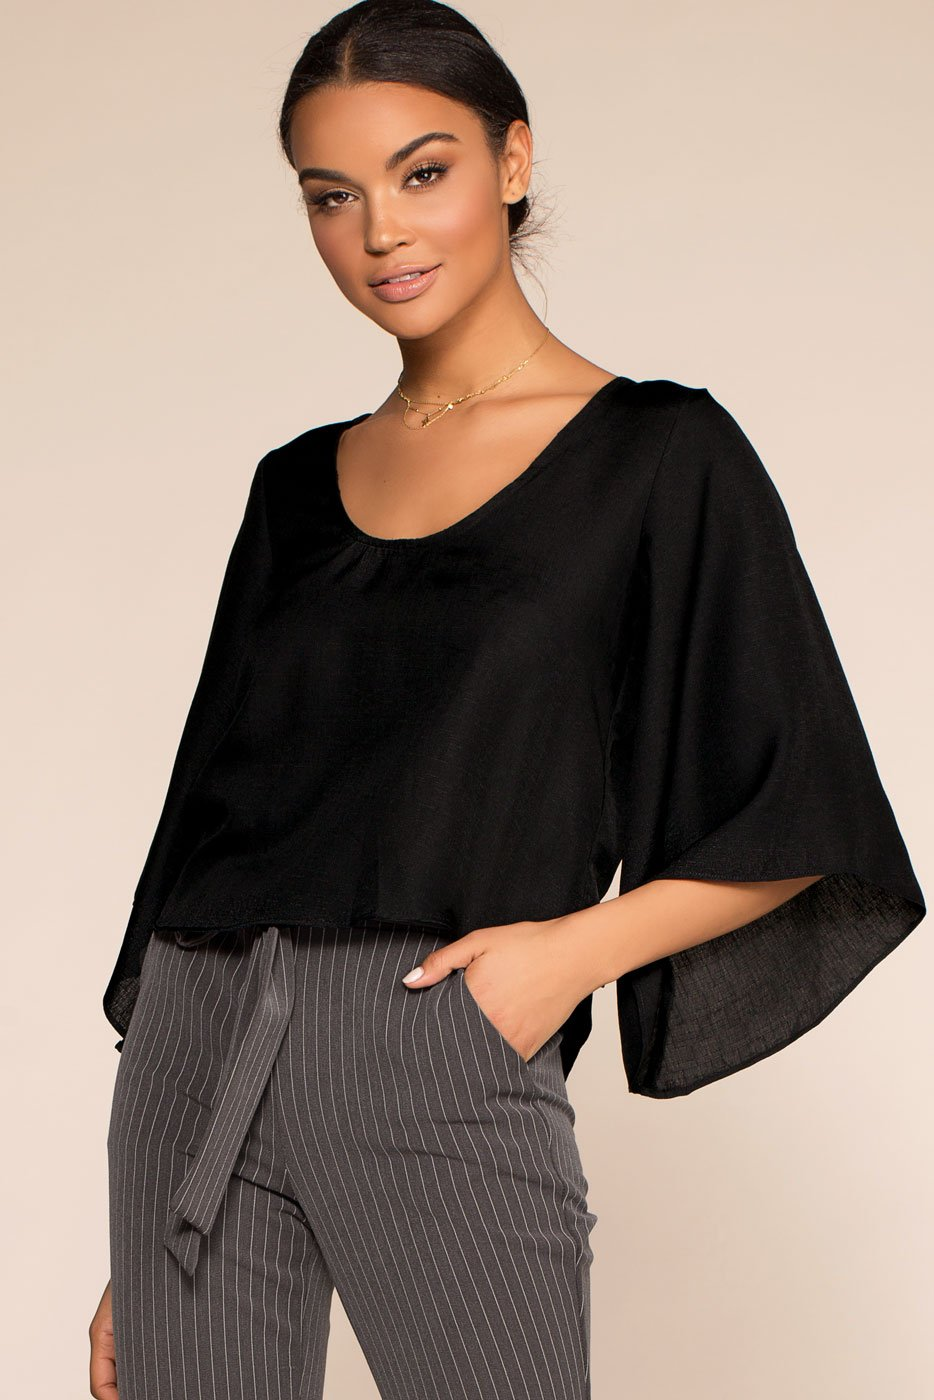 Tops - Kalahari Back Bow Top - Black